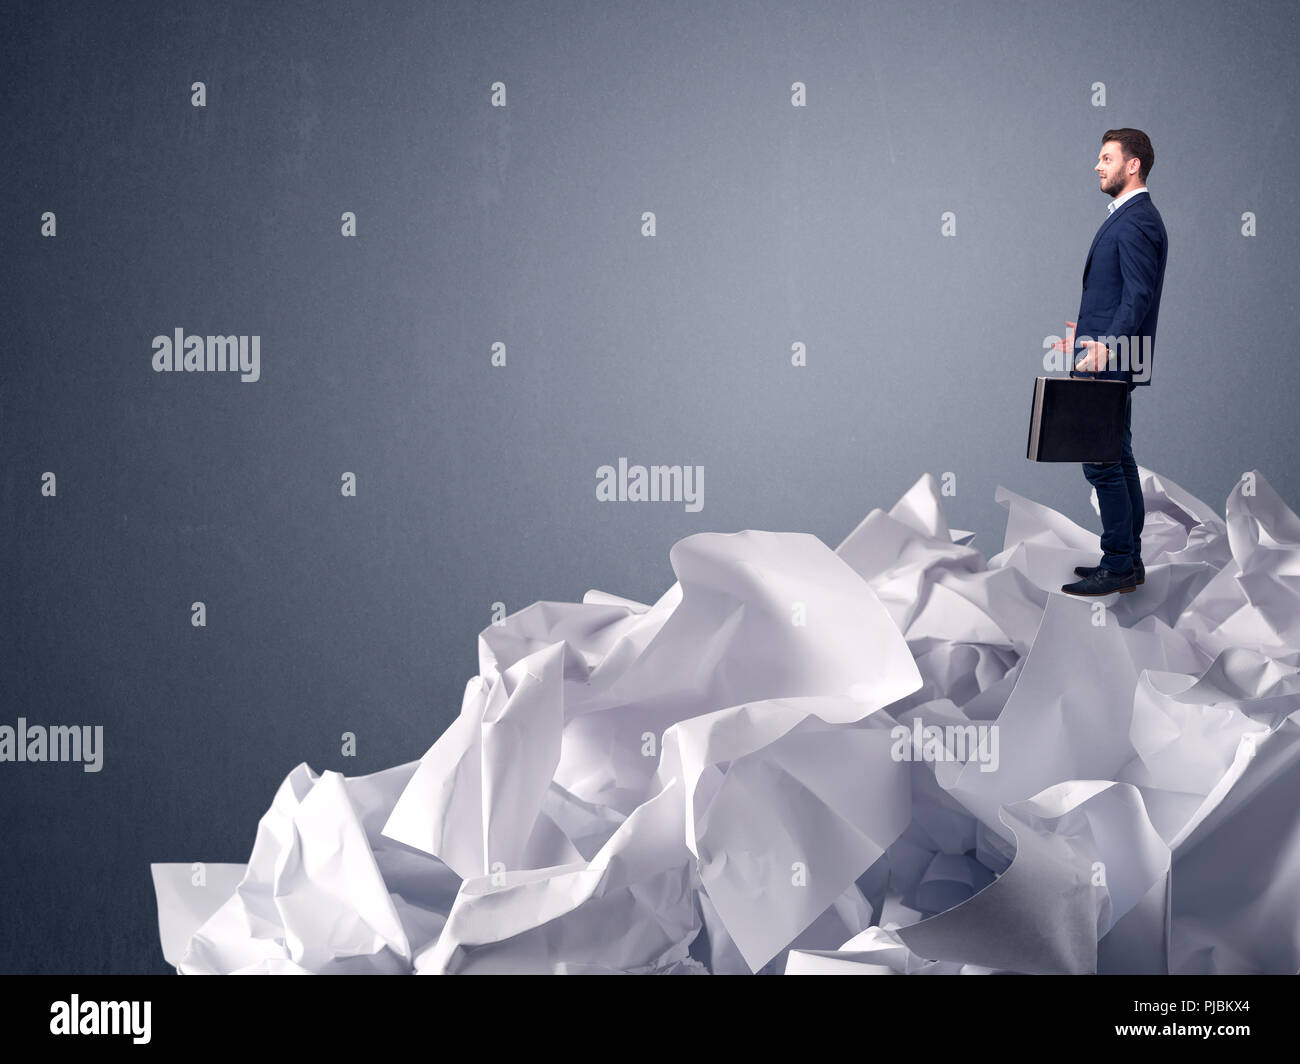 Thoughtful young businessman standing on a pile of crumpled paper with a light grey background - Stock Image